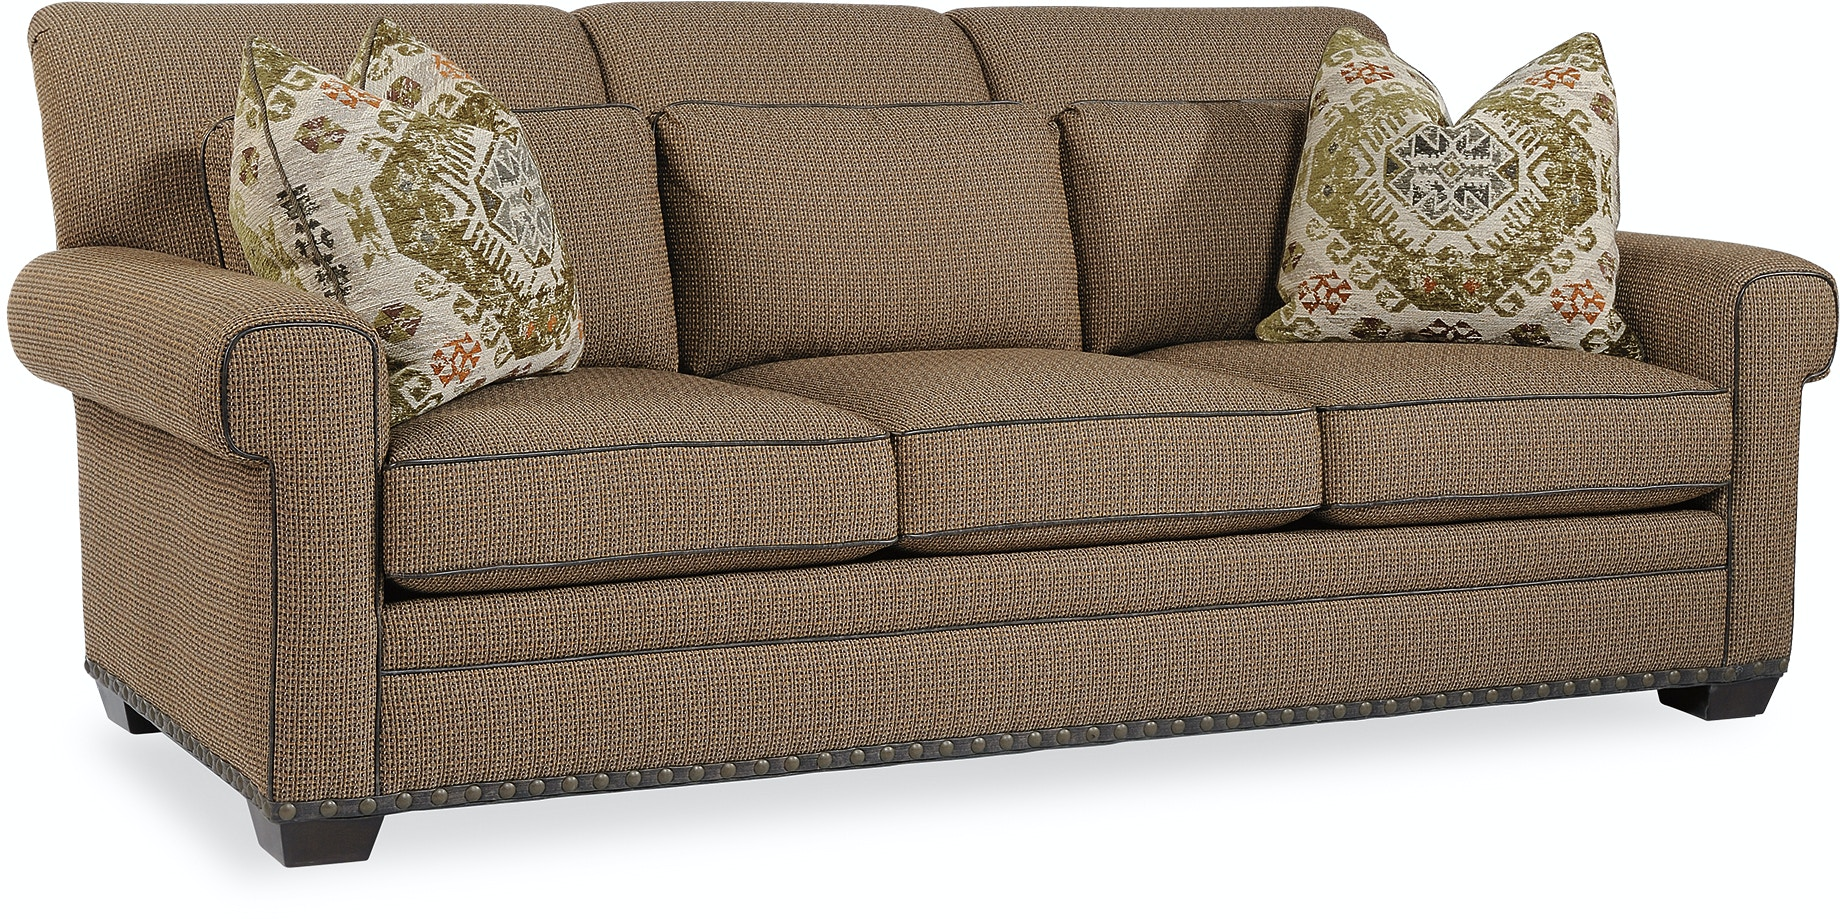 Taylor King Furniture Living Room Andermatt Sofa 2014 03